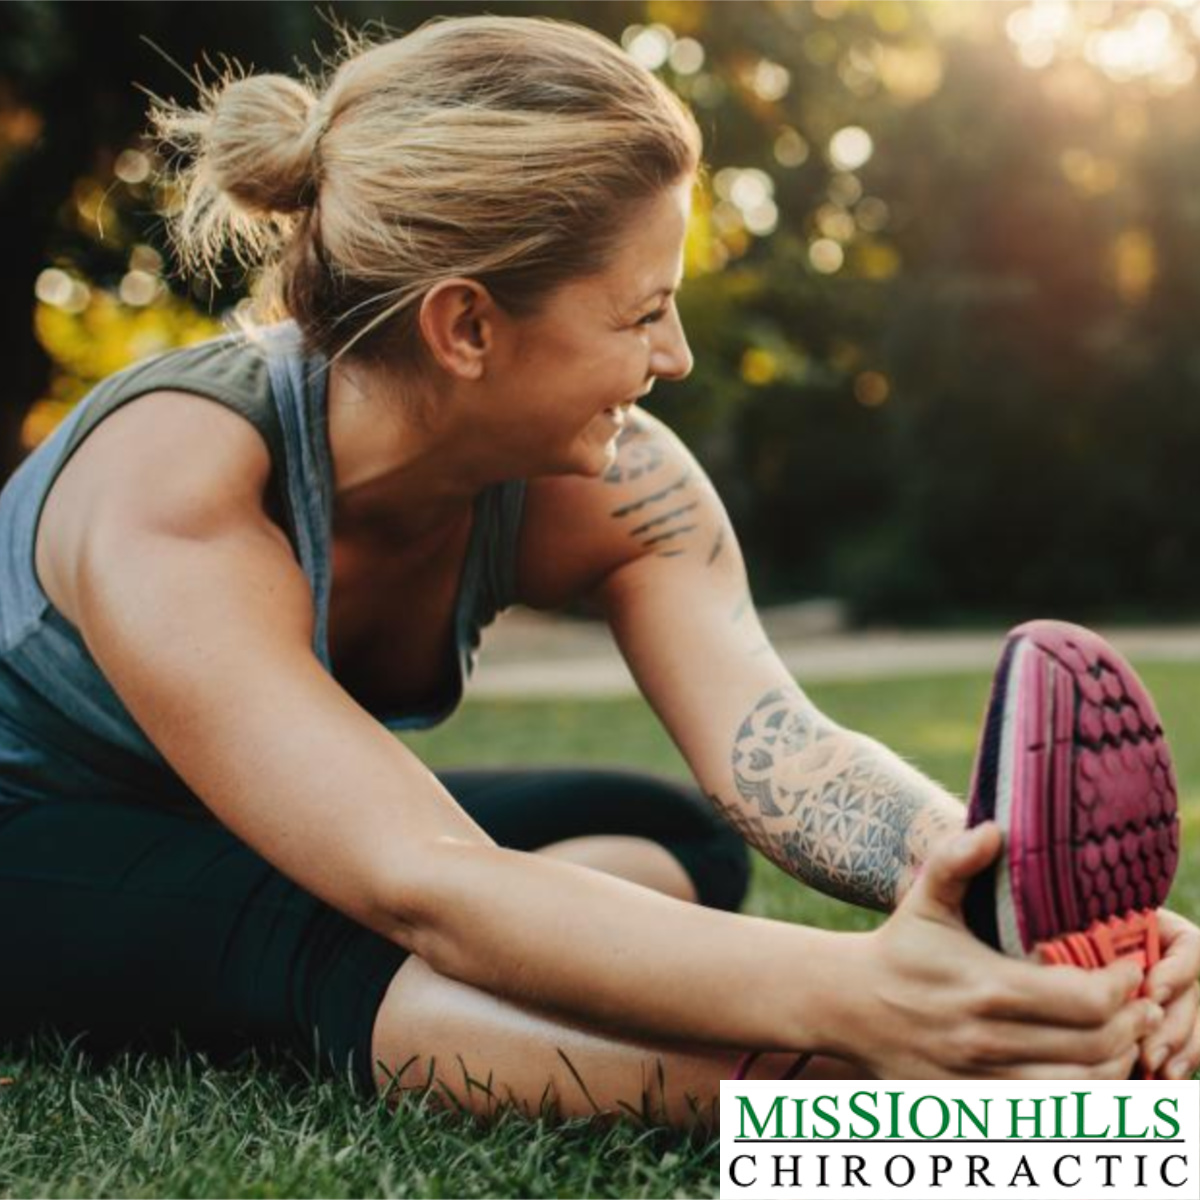 Workout Recovery Tips | Mission Hills Chiropractic, Lake Forest Chiropractors.jpg